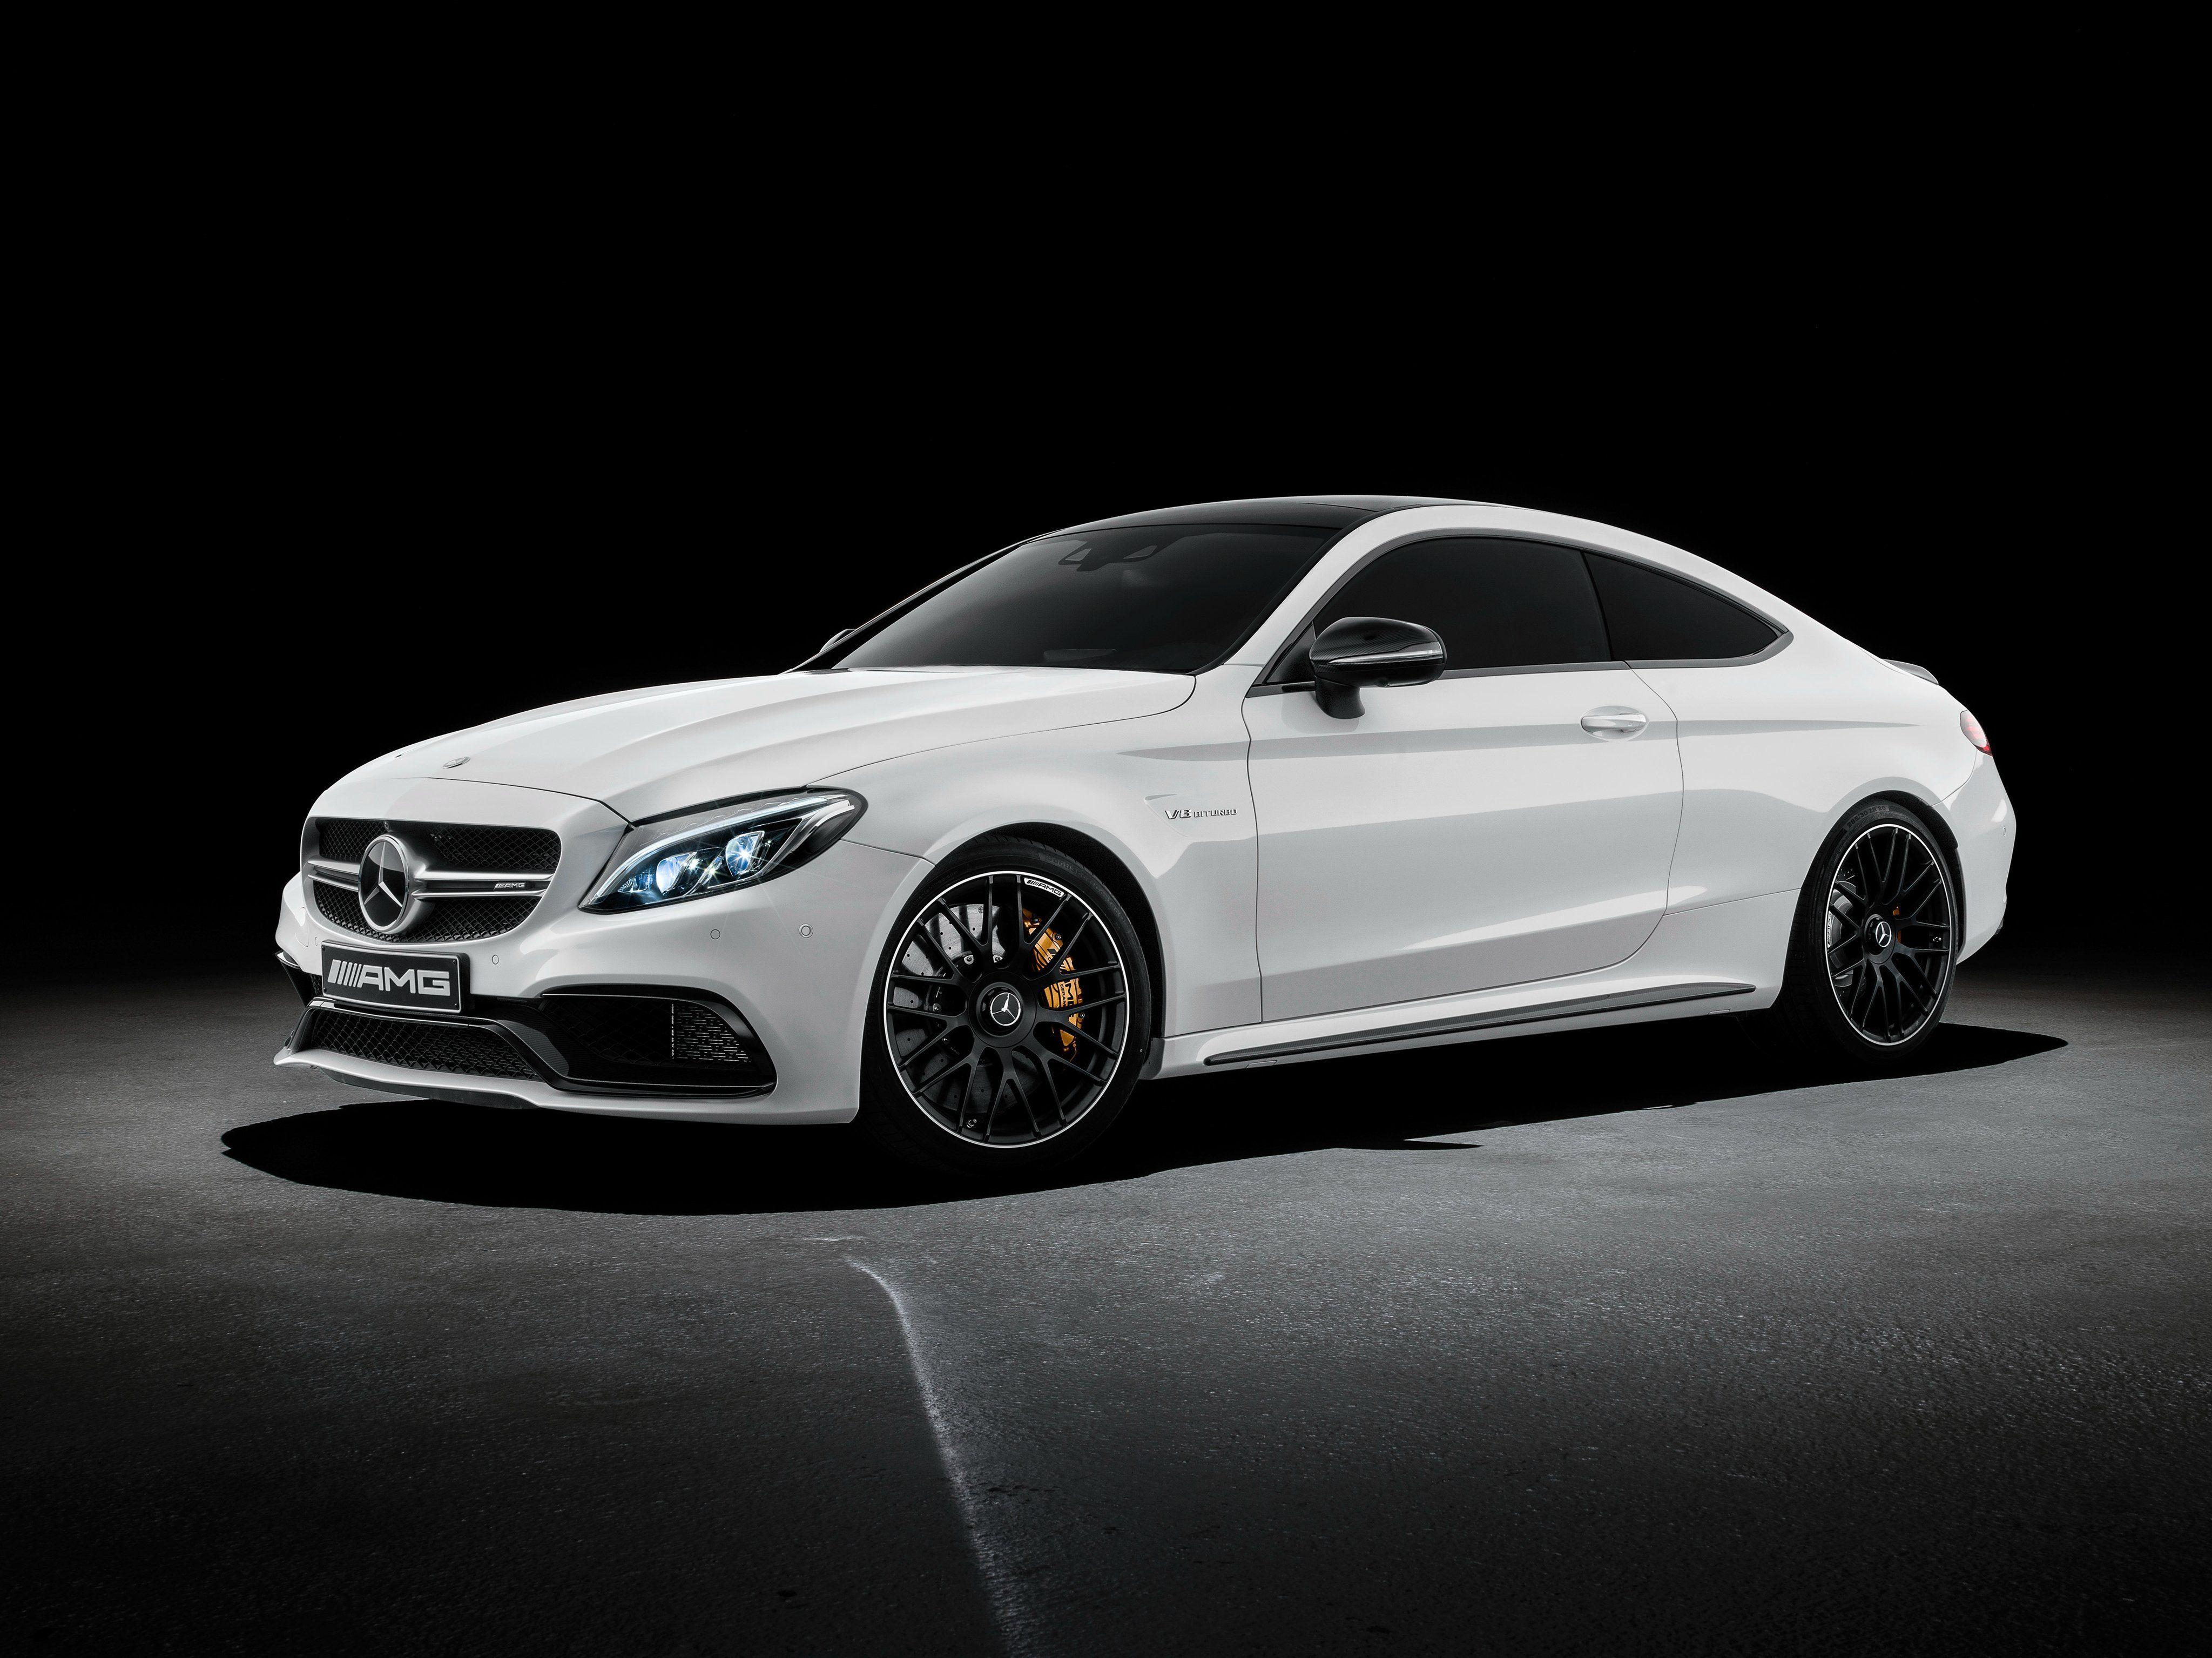 Mercedes AMG C63 S Coupe Wallpapers 4096x3070